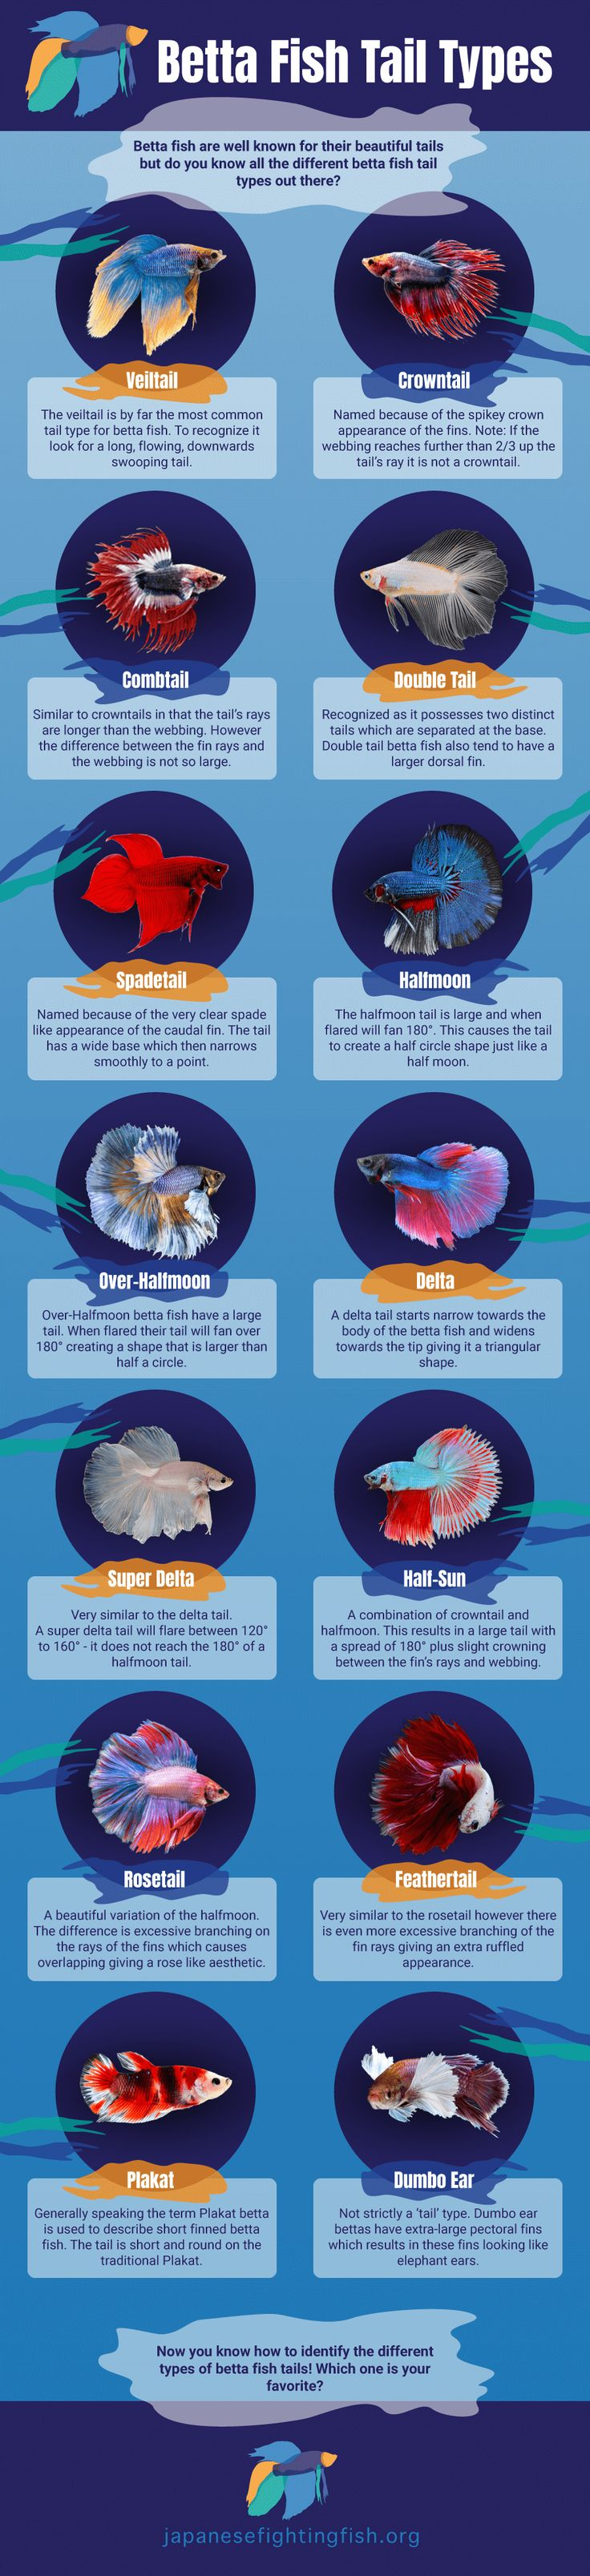 Betta fish are well known for their beautiful tails but do you know all the different betta fish tail types out there? Do you know what type of tail your betta fish has? This infographic shows them all.